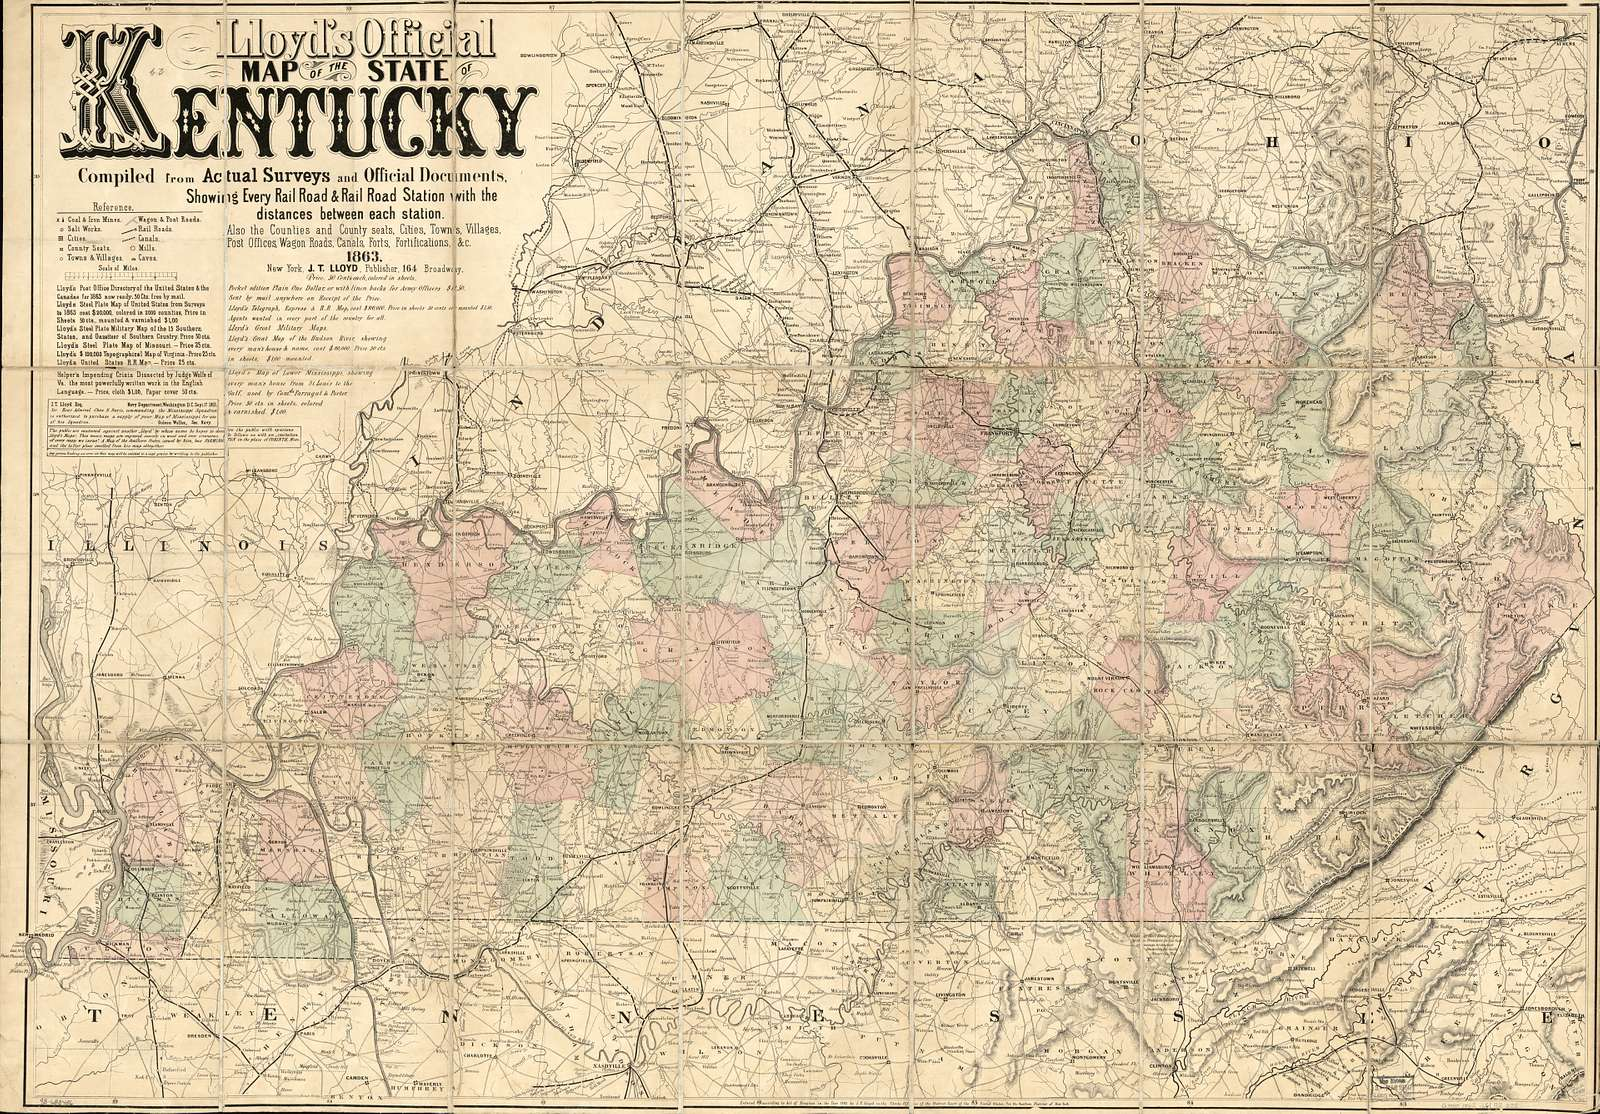 Lloyd's official map of the state of Kentucky compiled from actual surveys and official documents, showing every rail road & rail road station with the distances between each station. Also the counties and county seats, cities, towns, villages, post offices, wagon roads, canals, forts fortifications &c.